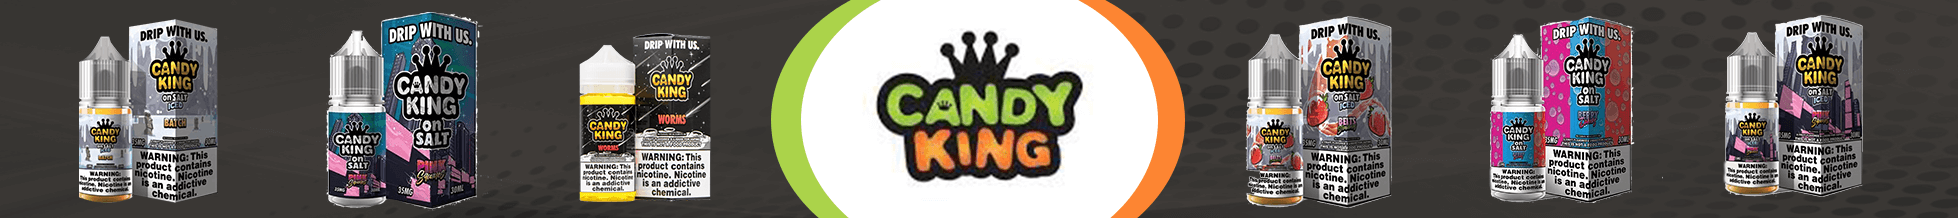 candy-king-salt.png